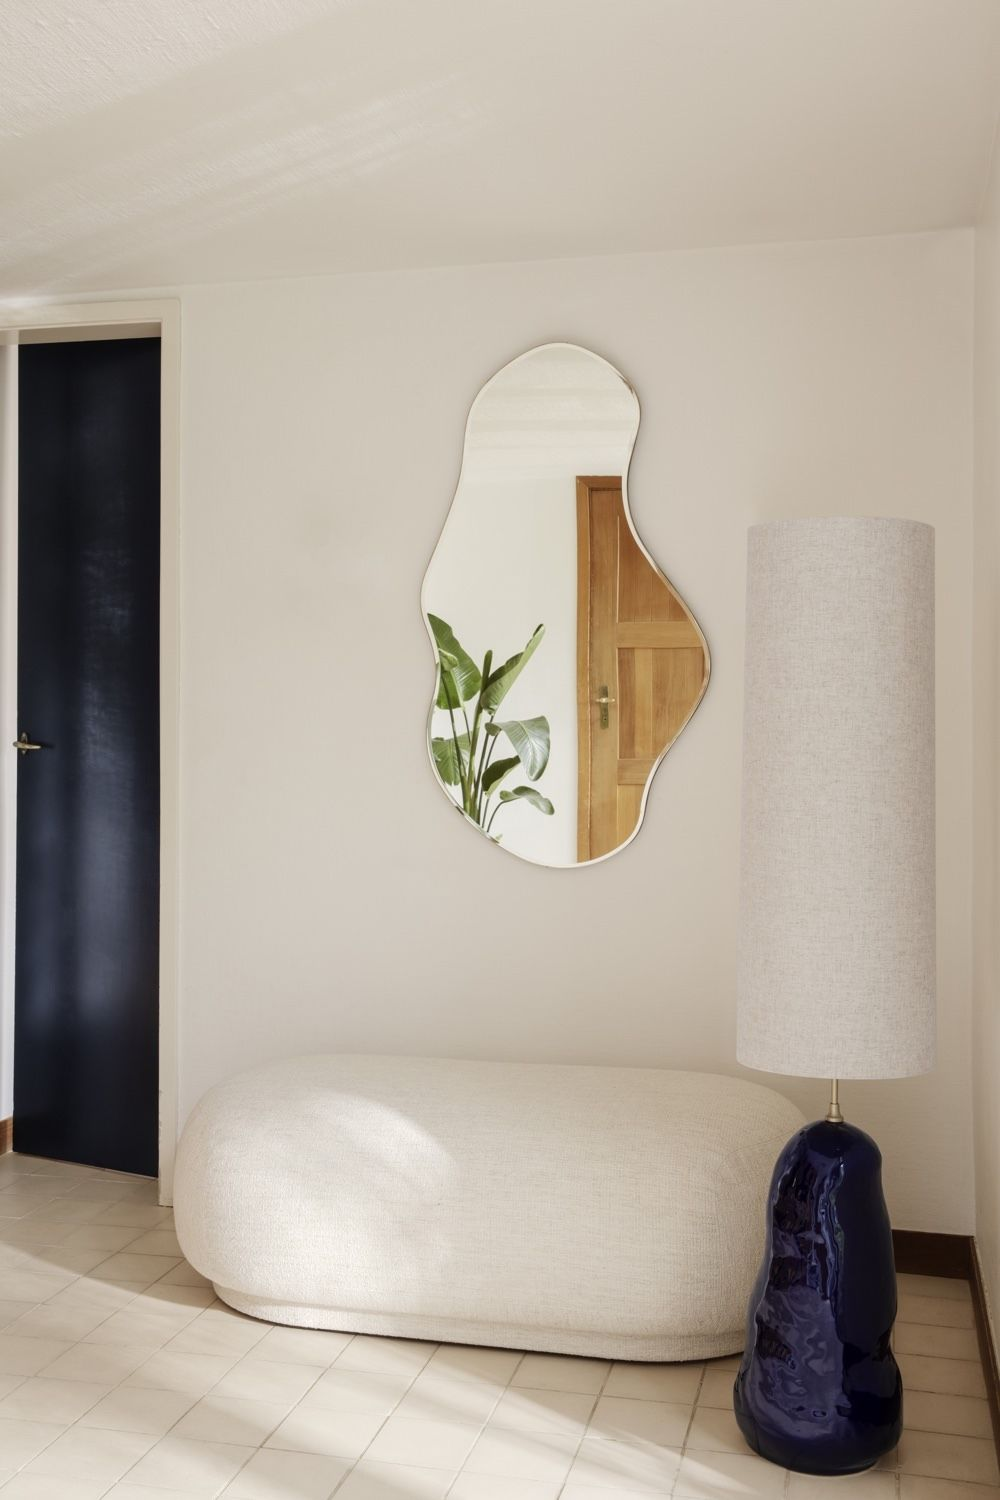 Ferm Living Pond Mirror Large hanging above a rico stool